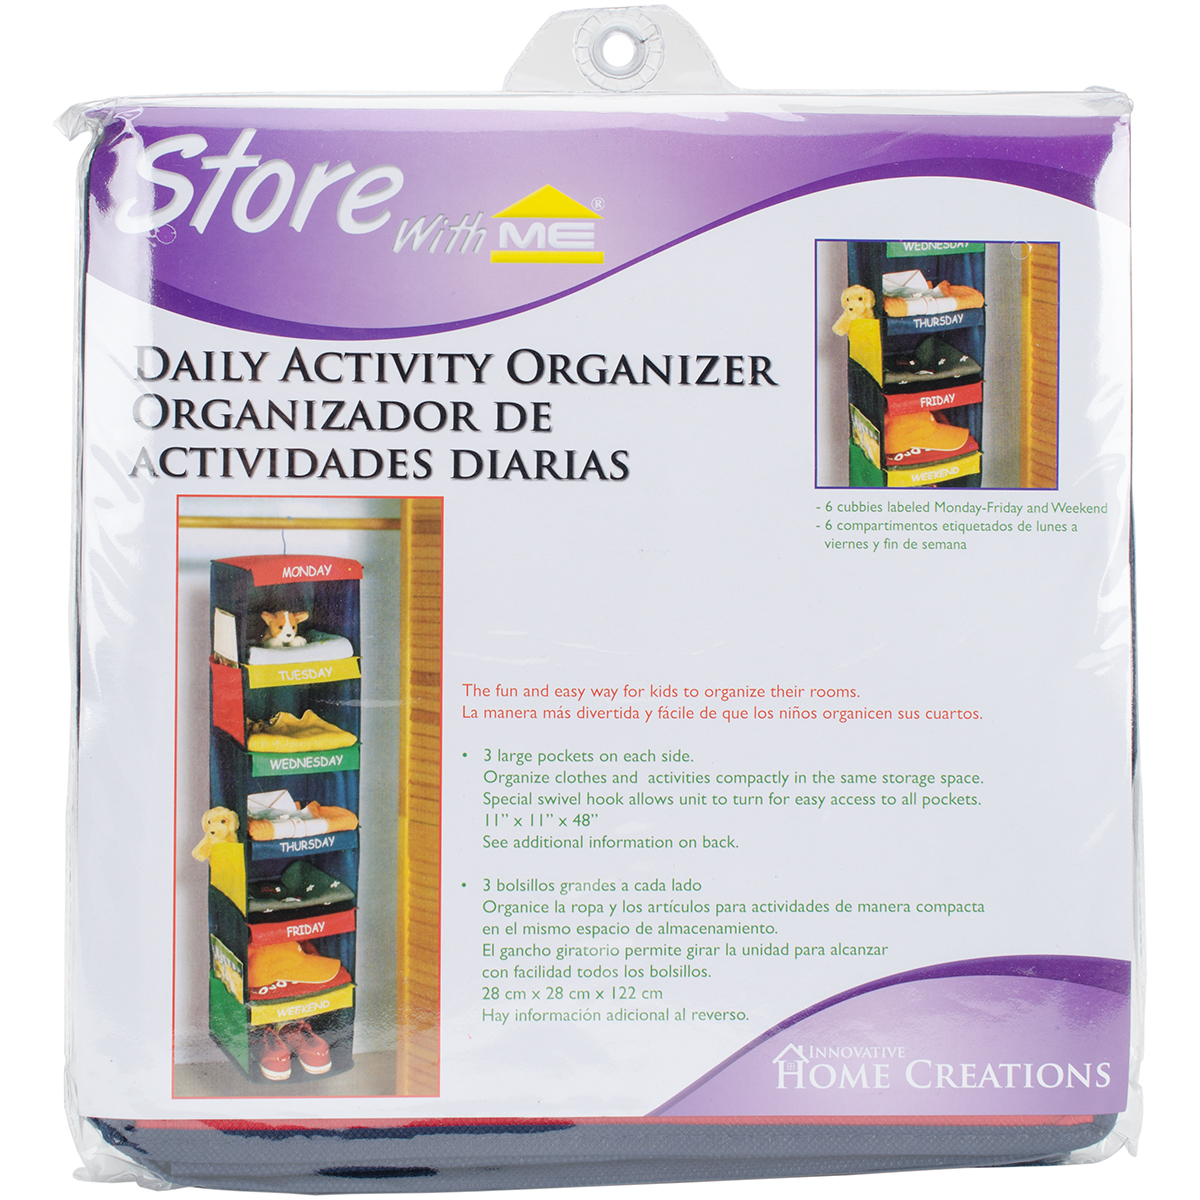 Innovative Home Creations Daily Activity Organizer, 6 Cubbies